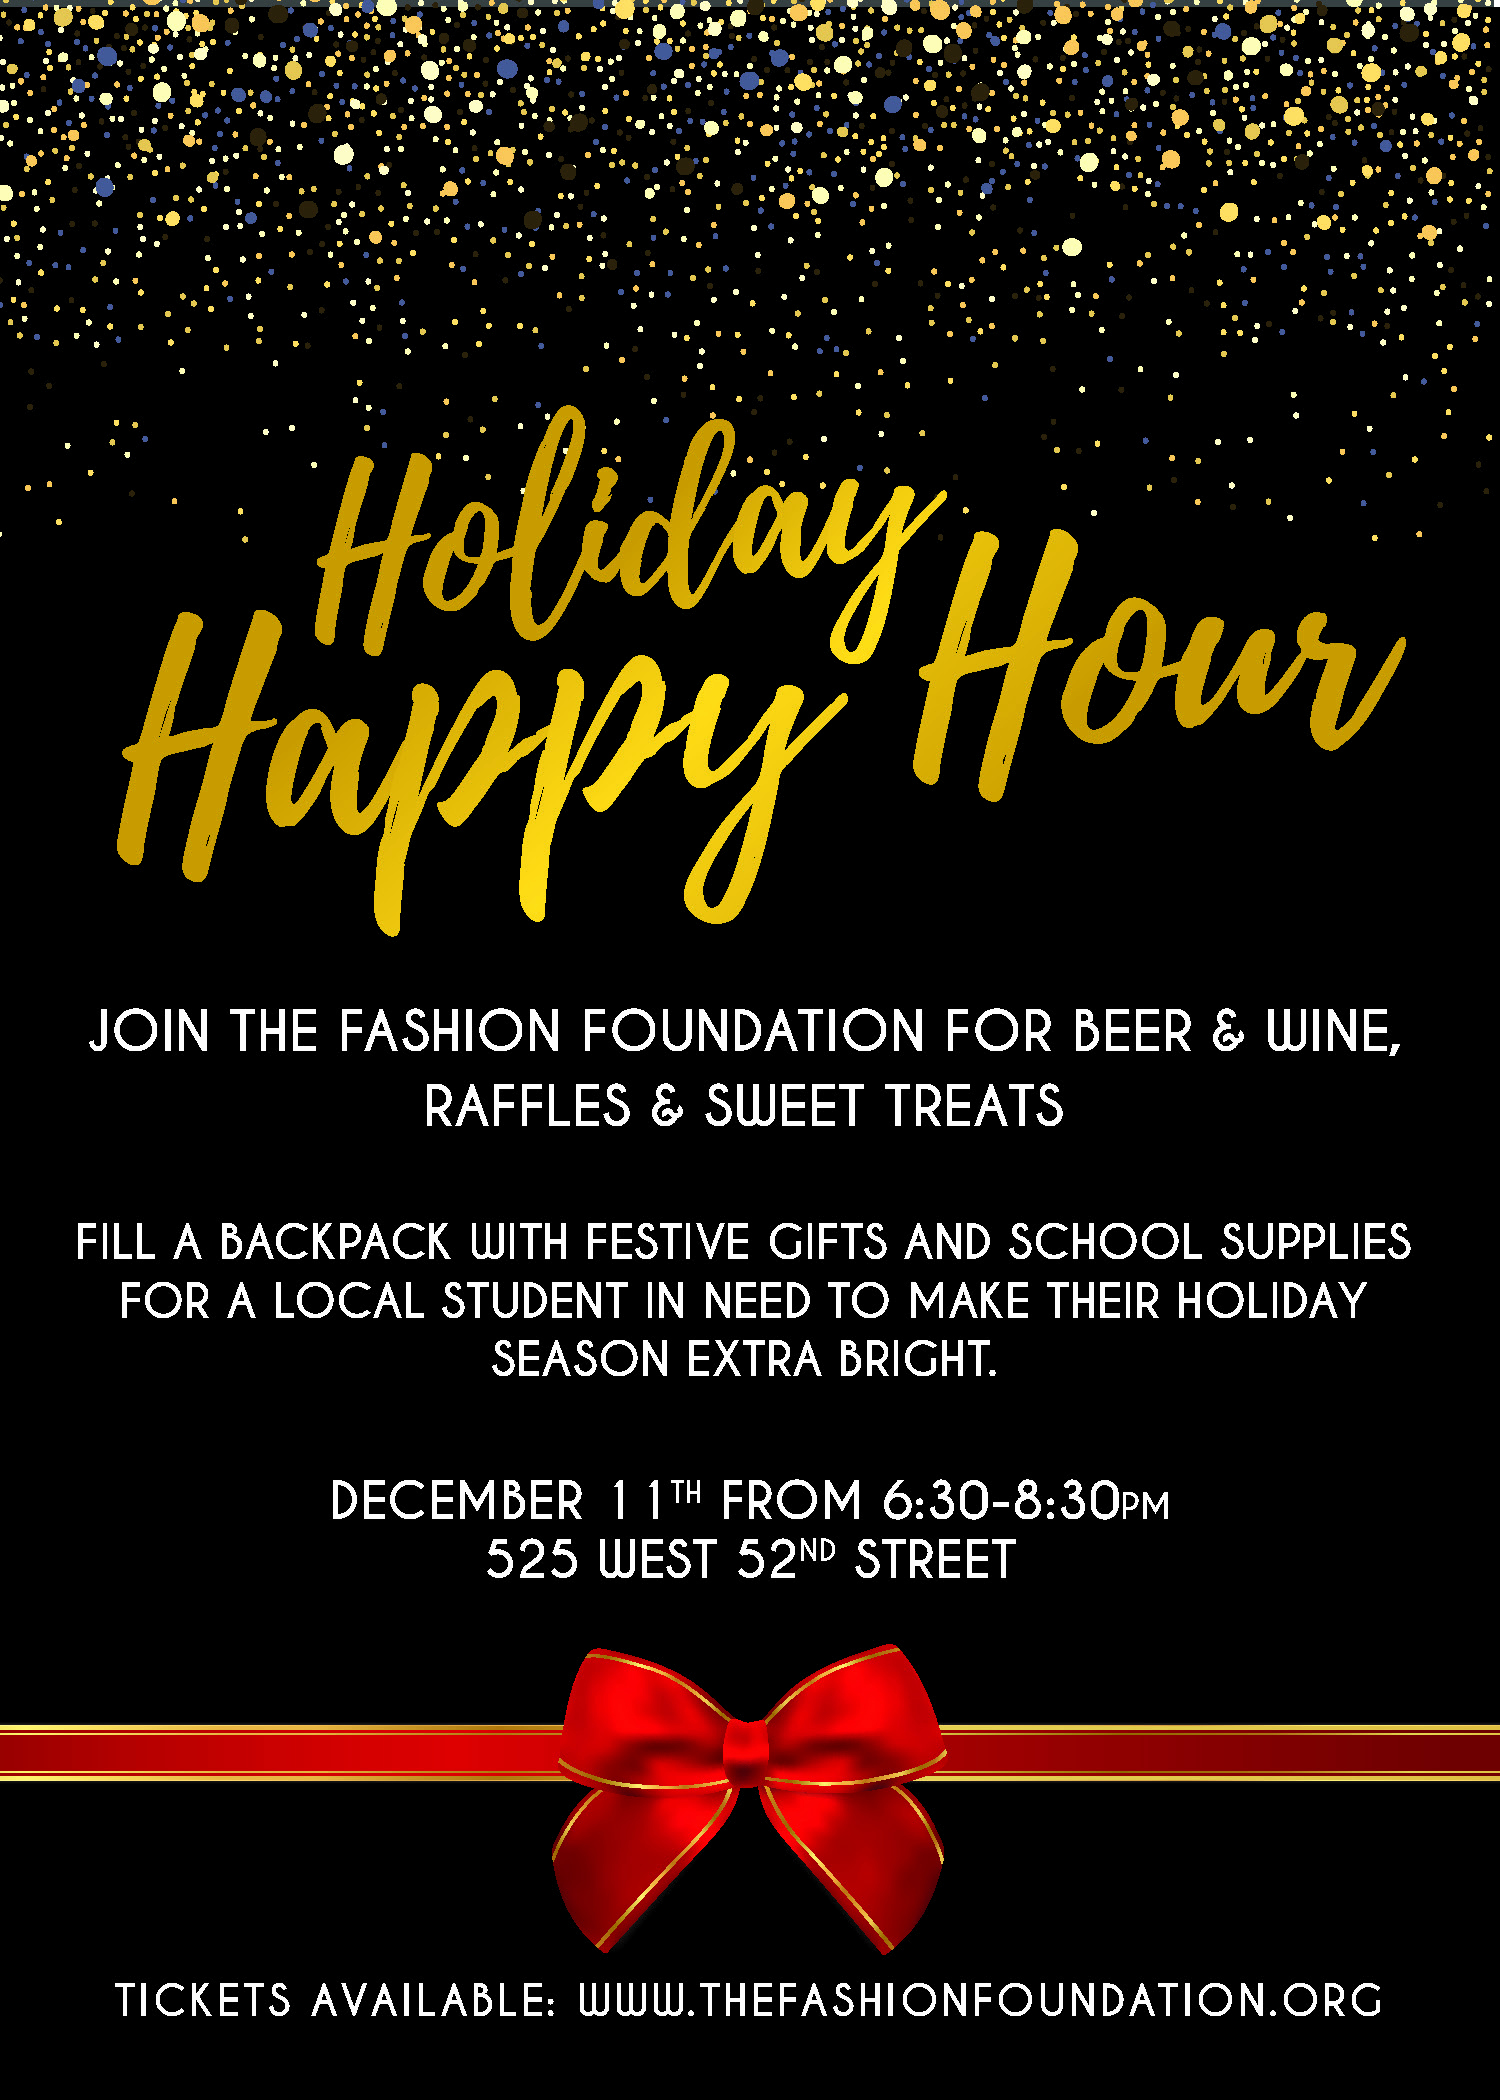 Holiday Happy Hour Invitation Elegant Holiday Happy Hour Tickets Mon Dec 11 2017 at 6 30 Pm